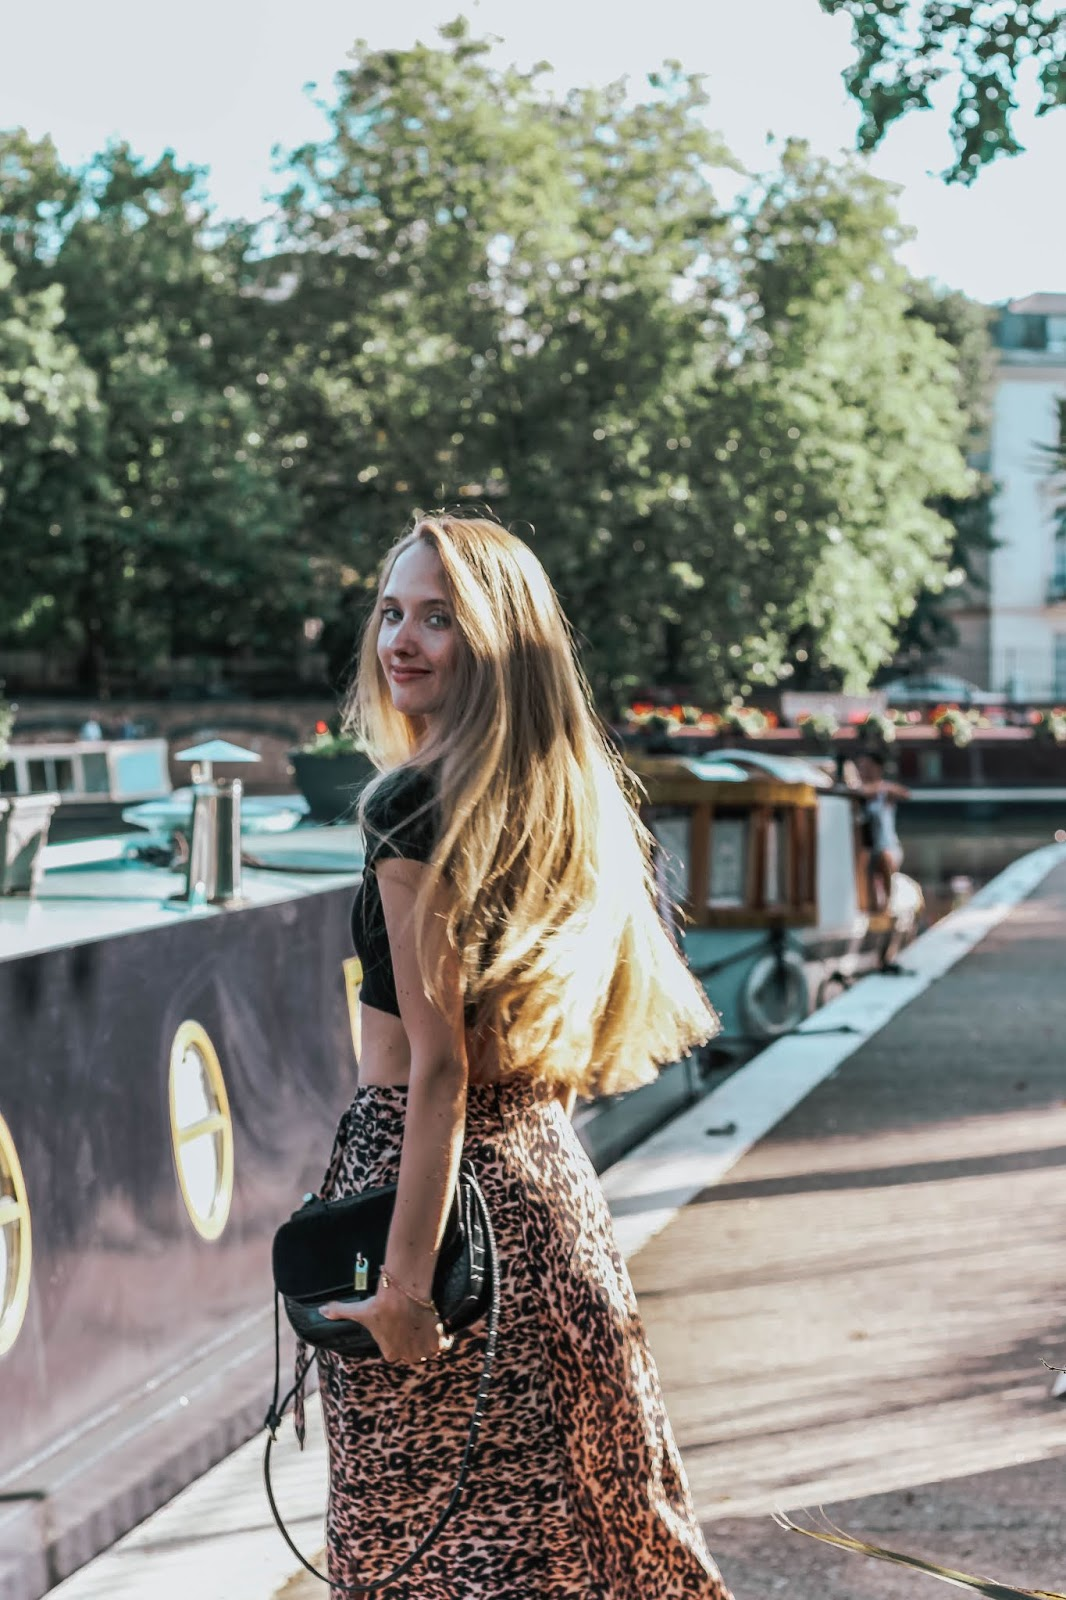 Little Venice London Fashion Blog Photoshoot